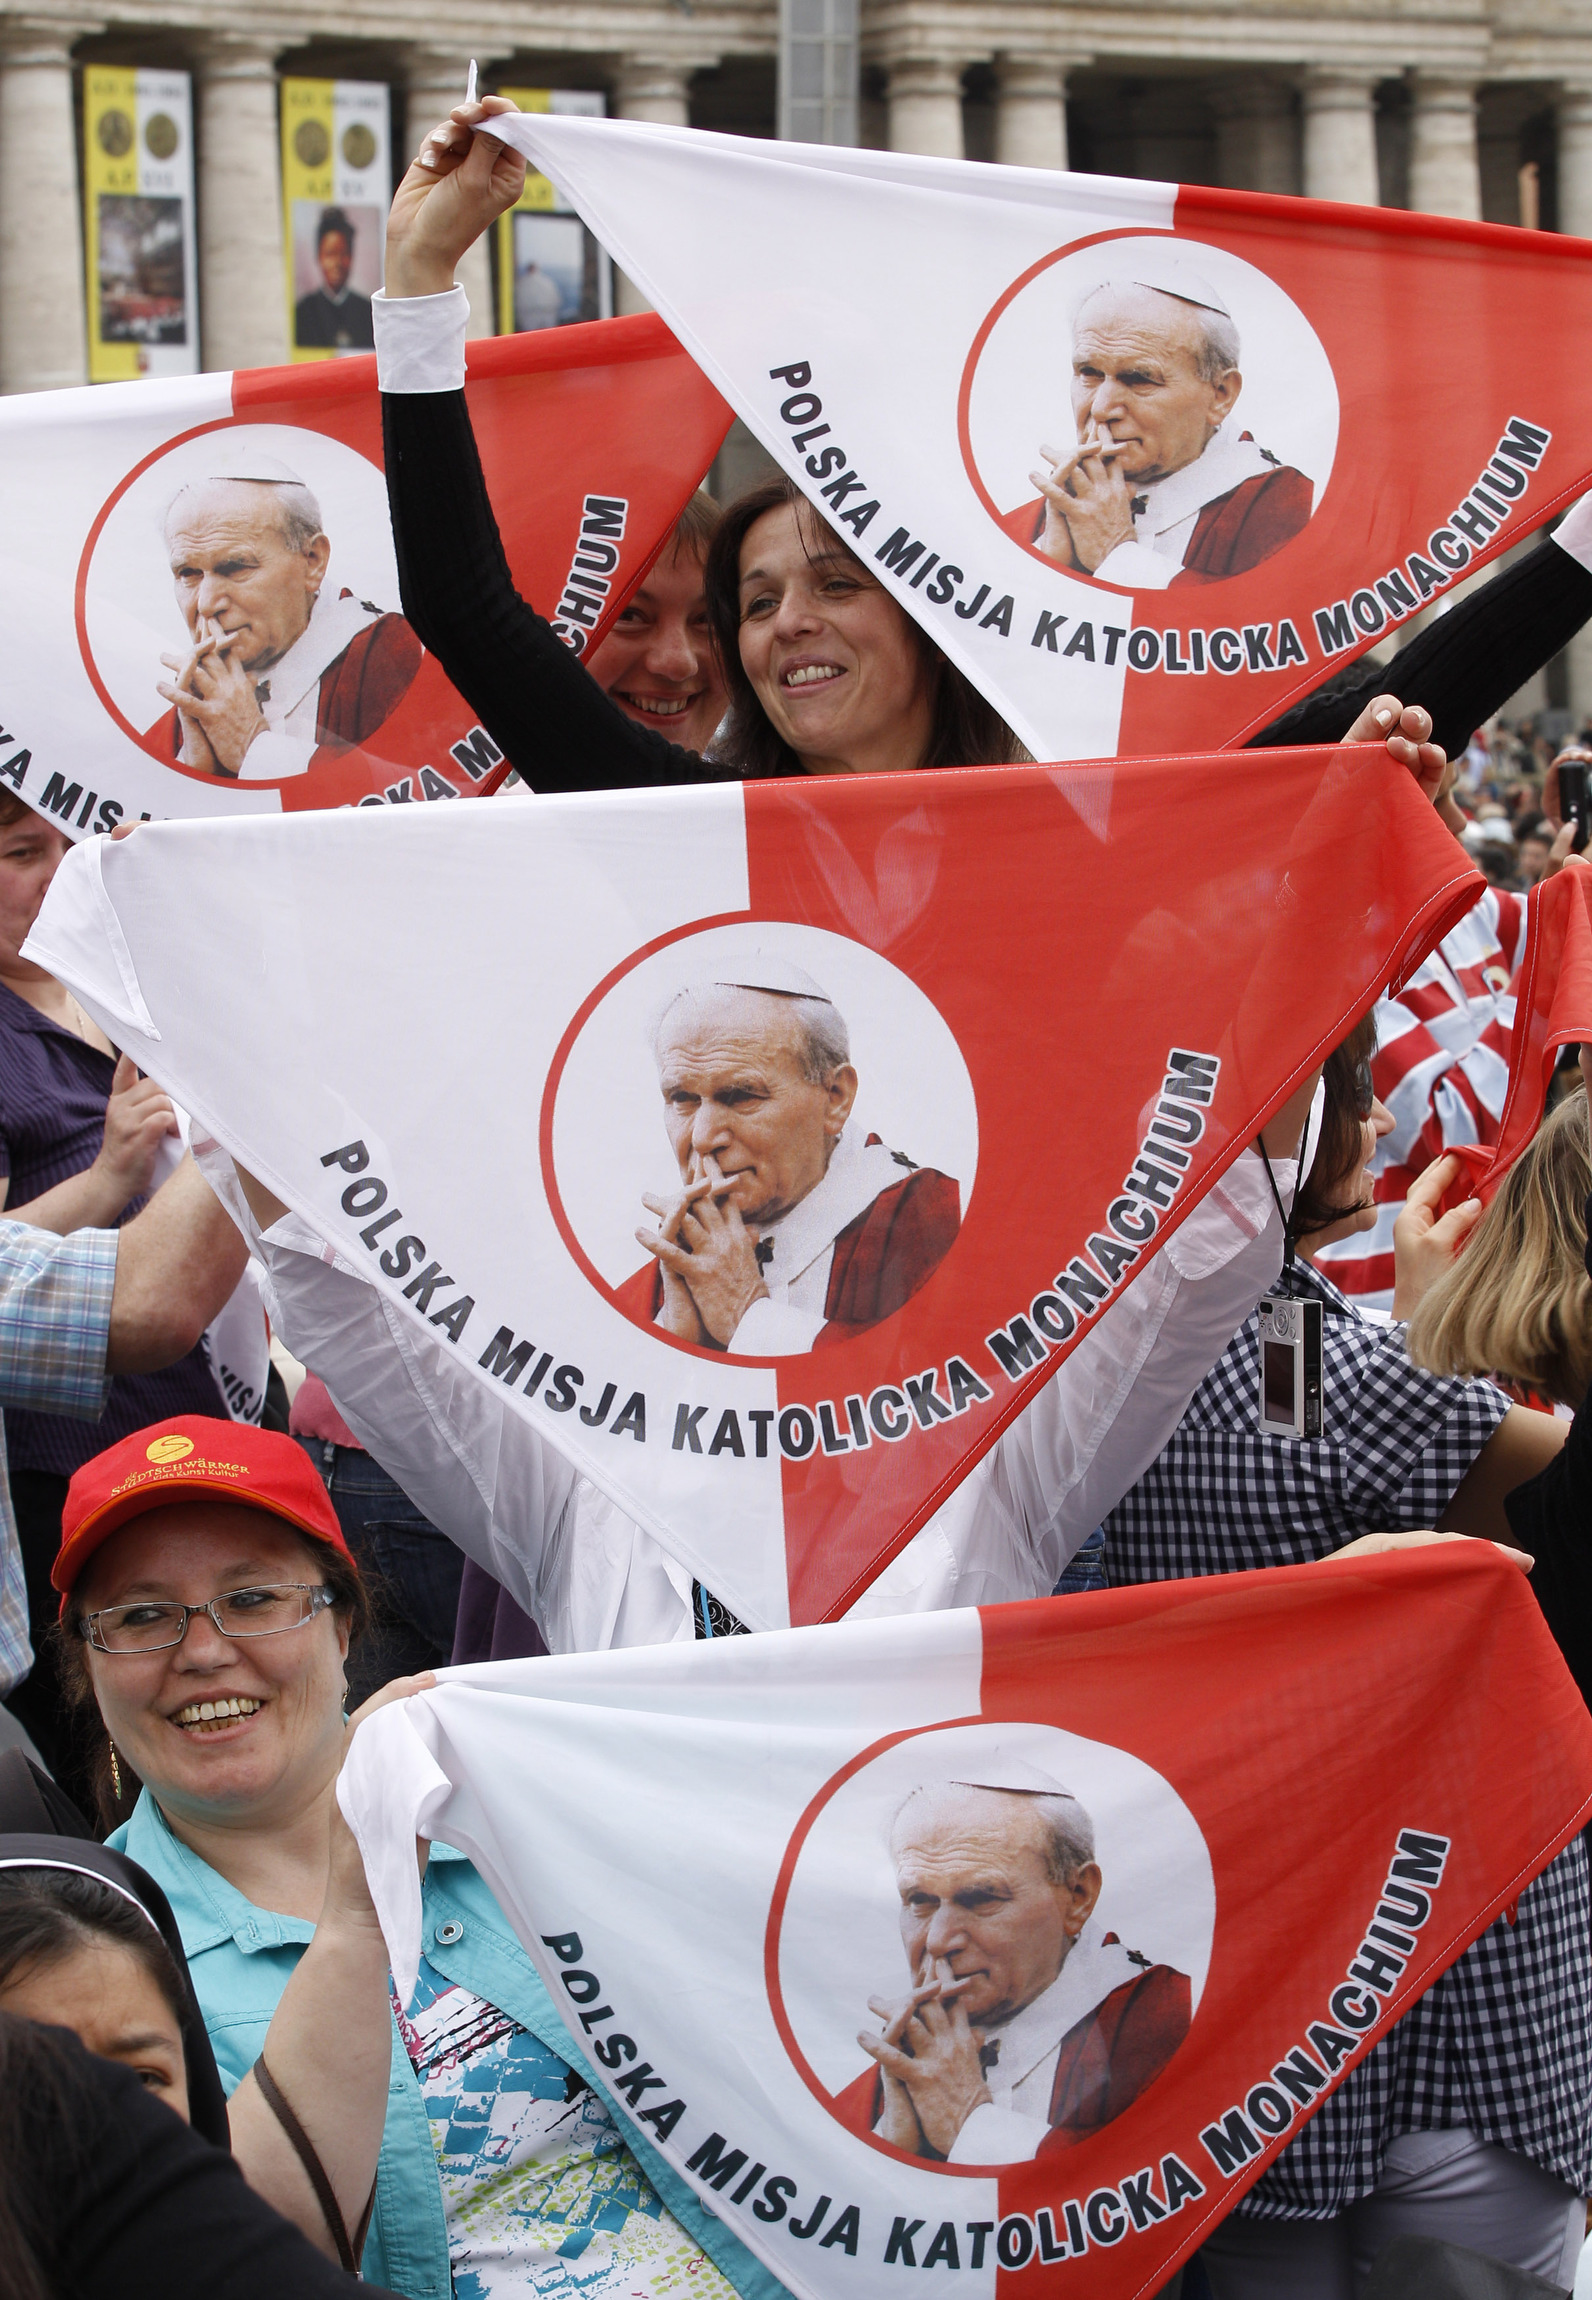 Pilgrims in St. Peter's Square hold up handkerchiefs featuring Blessed John Paul II the day after his beatification in 2011. The late Polish pontiff will be declared a saint, the Vatican said July 5, after officials approved a second miracle attributed to his intercession. (CNS photo/Paul Haring)